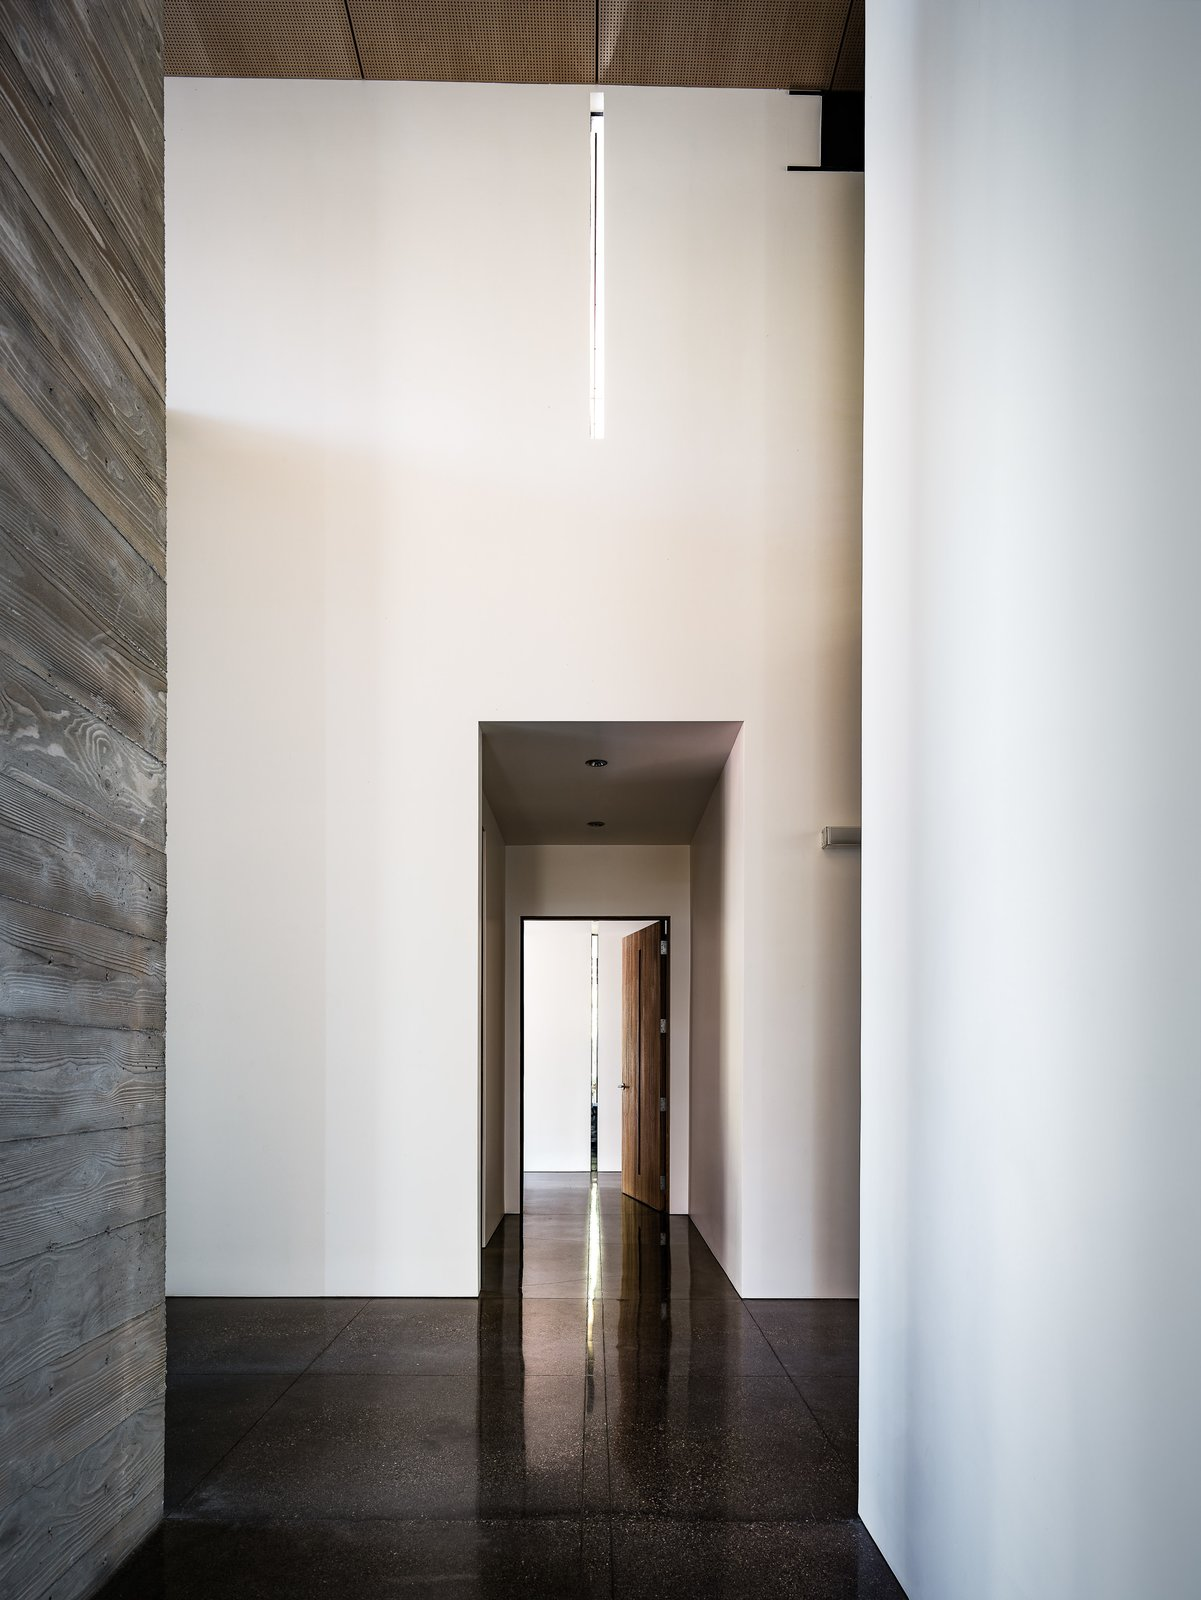 Hallway and Concrete Floor The eye is drawn down the corridor towards the slice of light.  Photo 10 of 18 in An Uplifting Lake Tahoe Retreat Uses Light as a Building Material